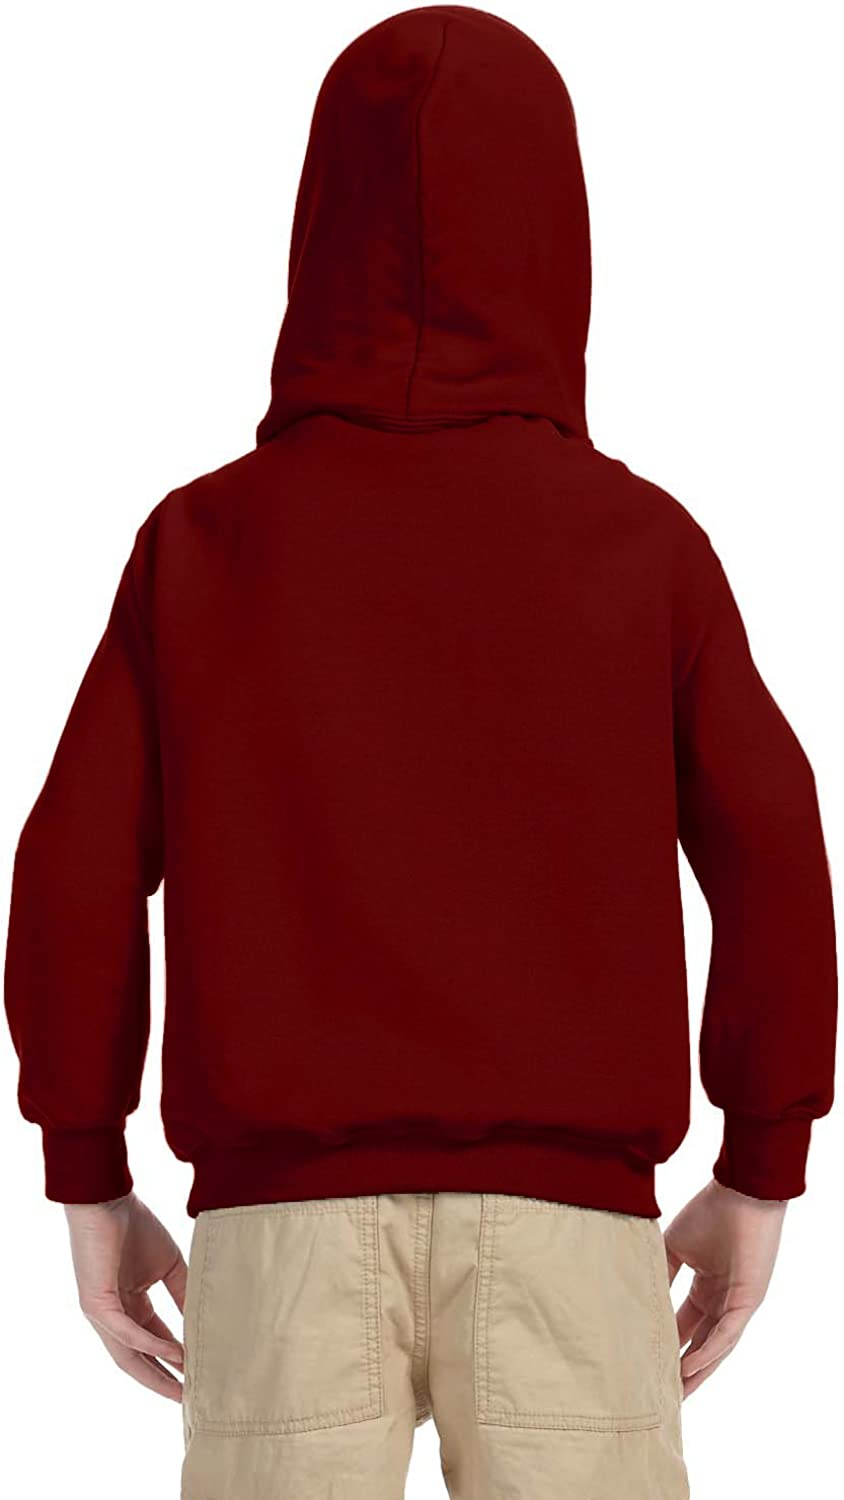 Indica Plateau Respect Hoodie for Kids